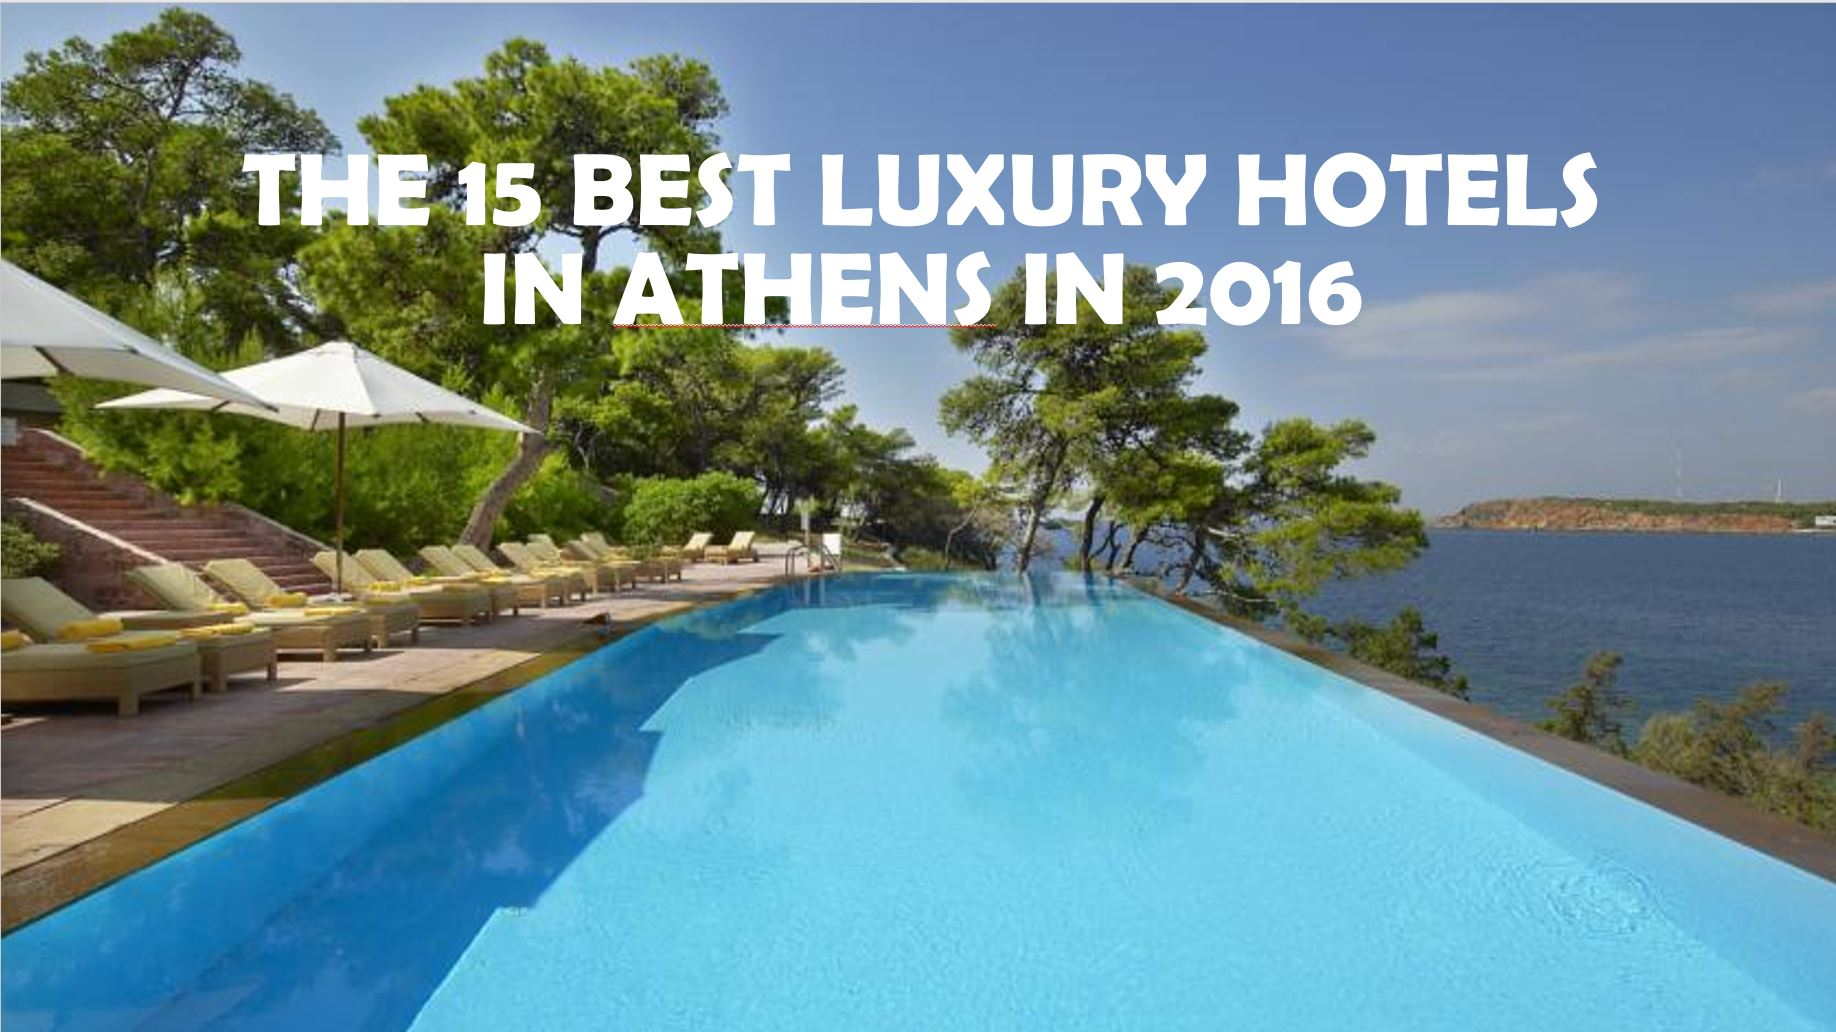 The 15 best luxury hotels in athens greece in 2016 guidora for Luxury hotel accommodation